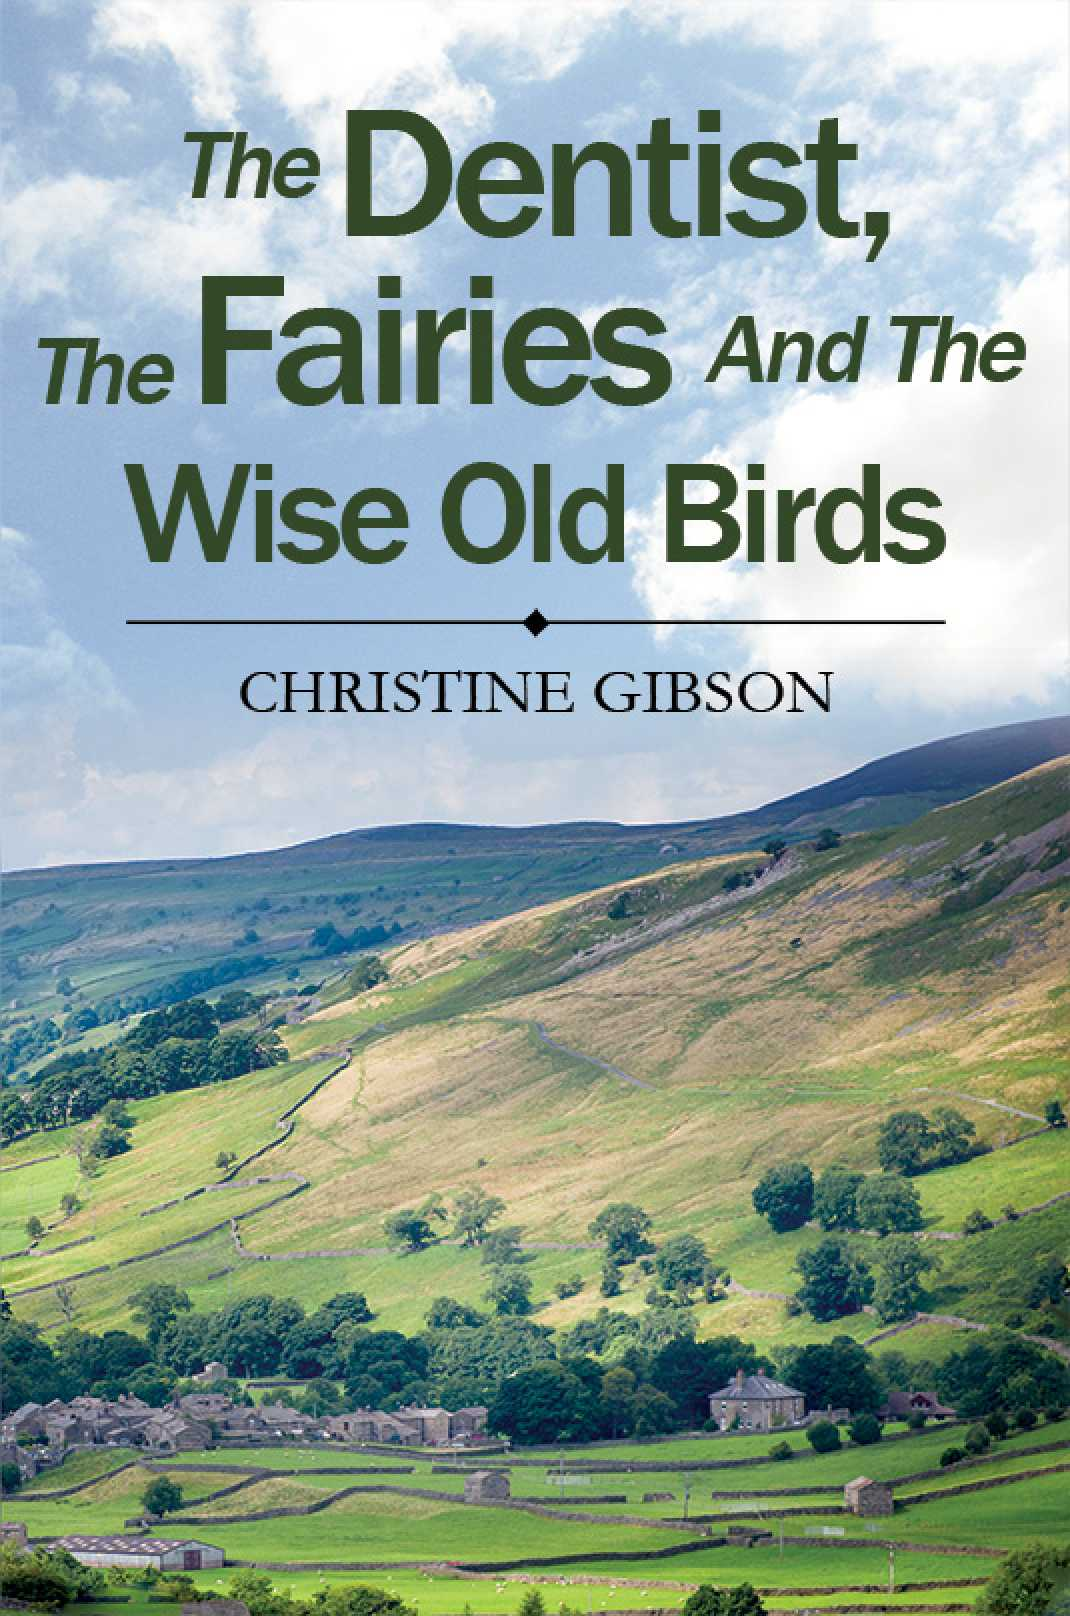 The Dentist, The Fairies And The Wise Old Birds